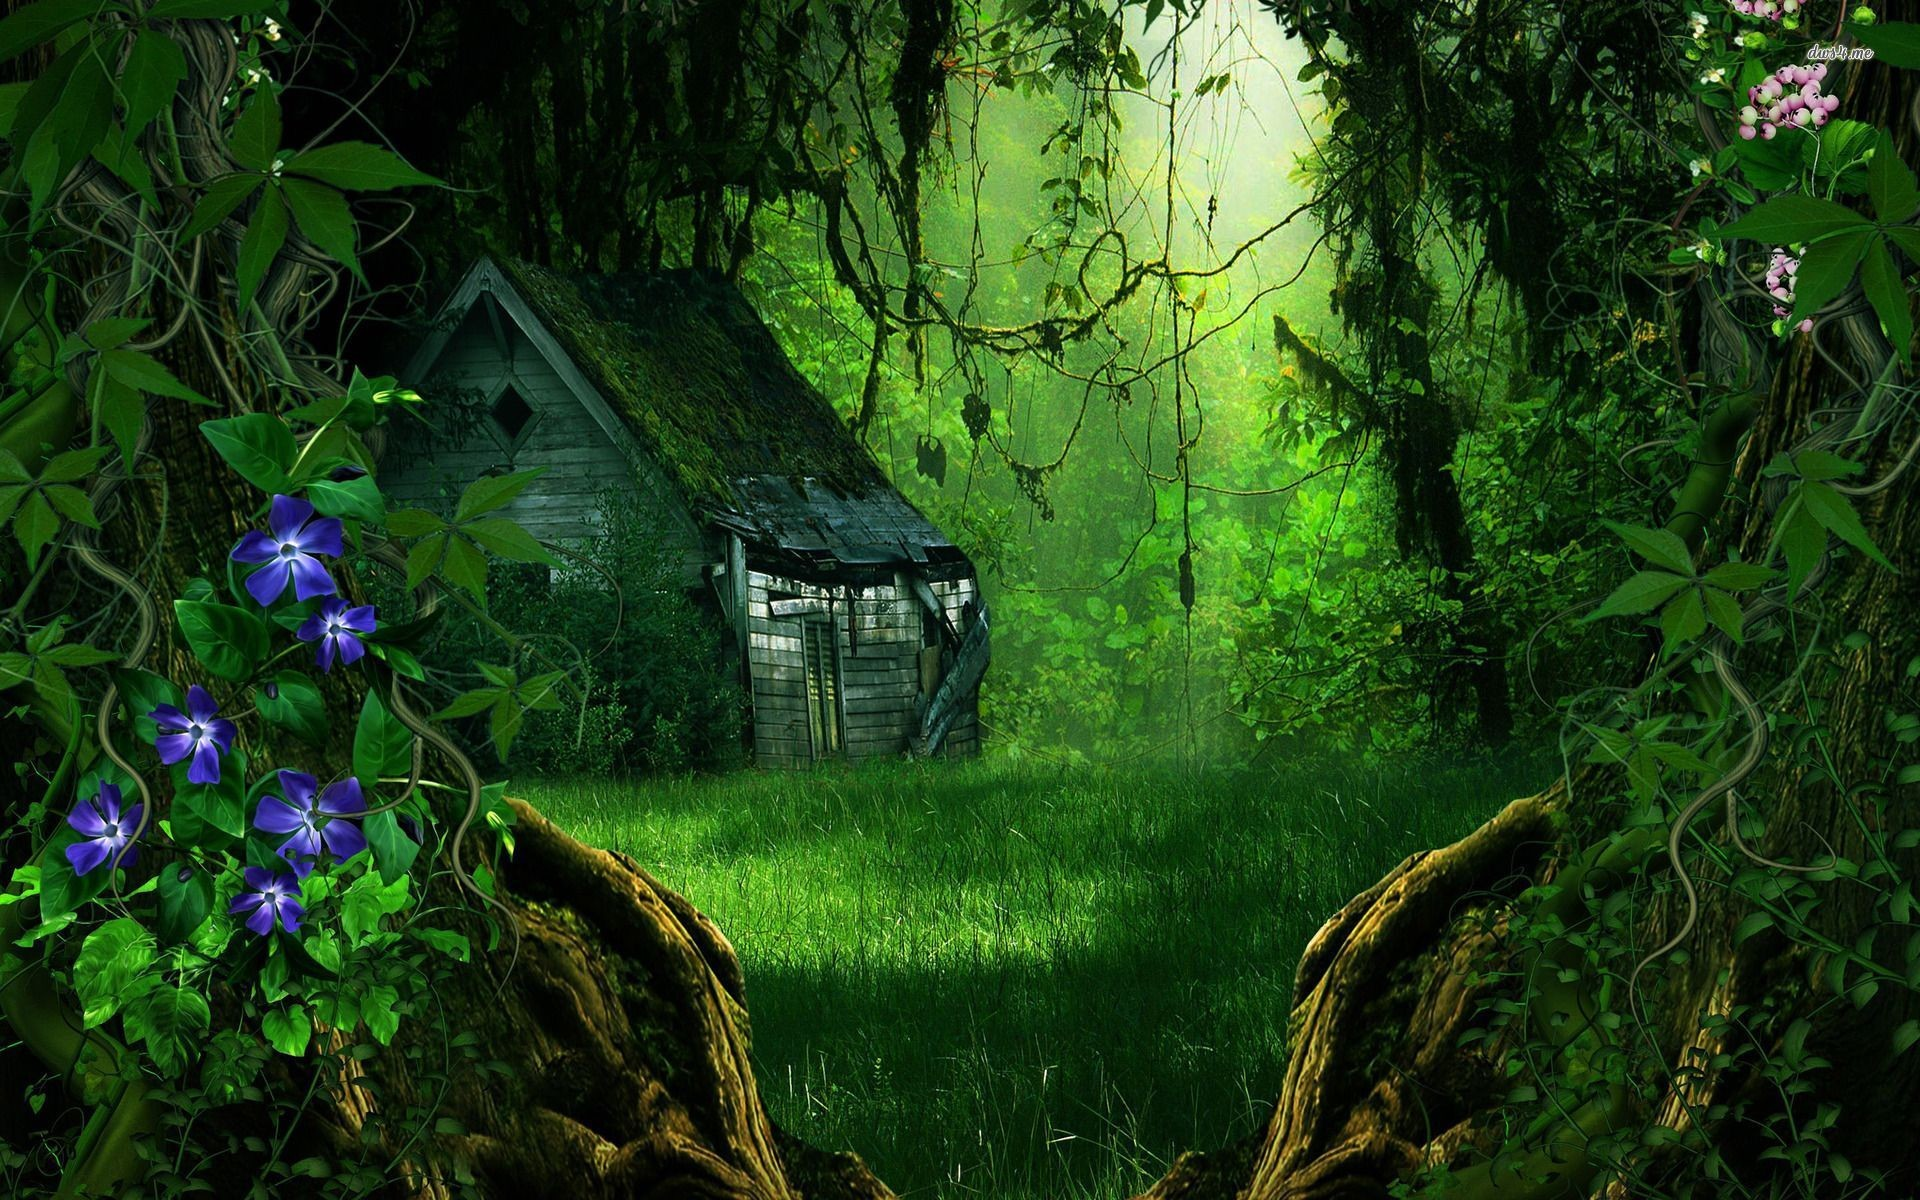 Abandoned house in the forest wallpaper – Fantasy wallpapers – #18774